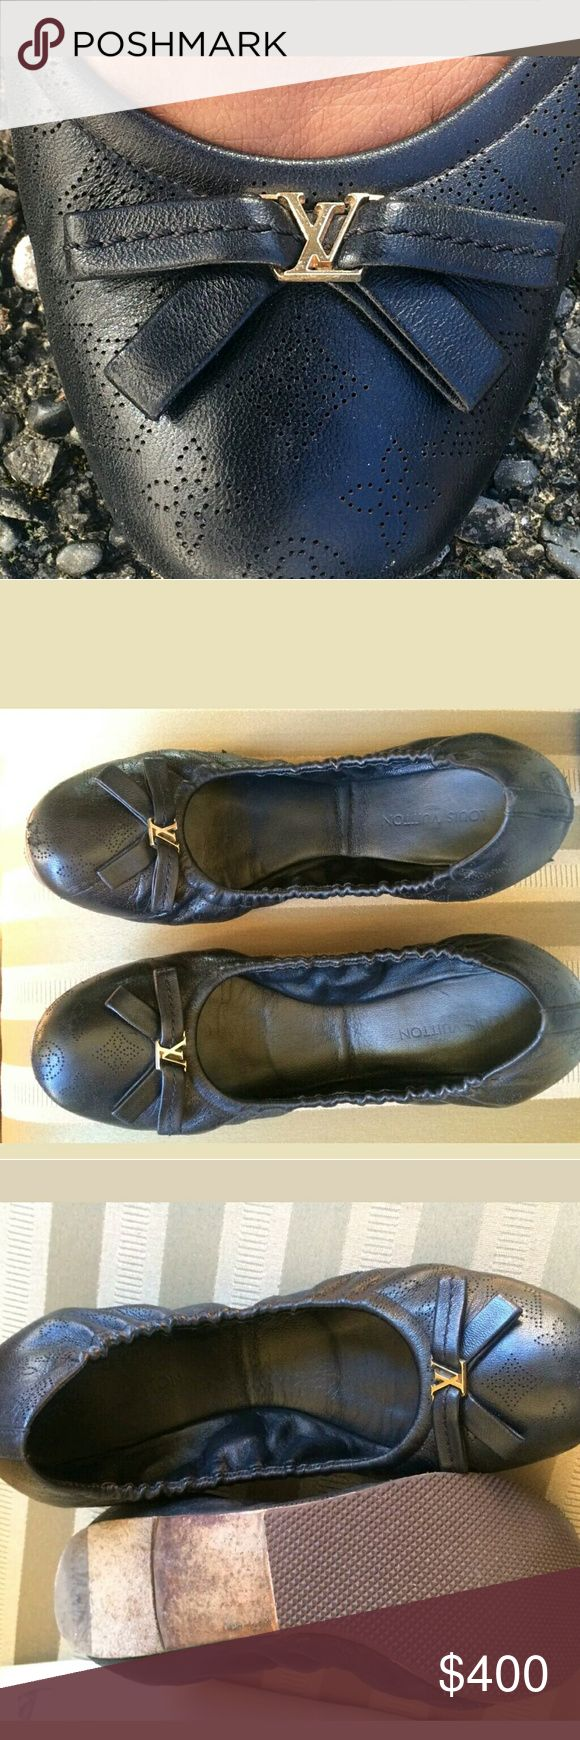 "Louis vuitton ""ELBA"" black ballet flats 100% authentic  Louis Vuitton black ""ELBA"" monogram ballet flats with gold LV hardware.  Size has been worn off but they are a 39.5 and fit a US 9 perfectly.  No box  GOOD CONDITION MINOR WEAR Louis Vuitton Shoes Flats & Loafers"